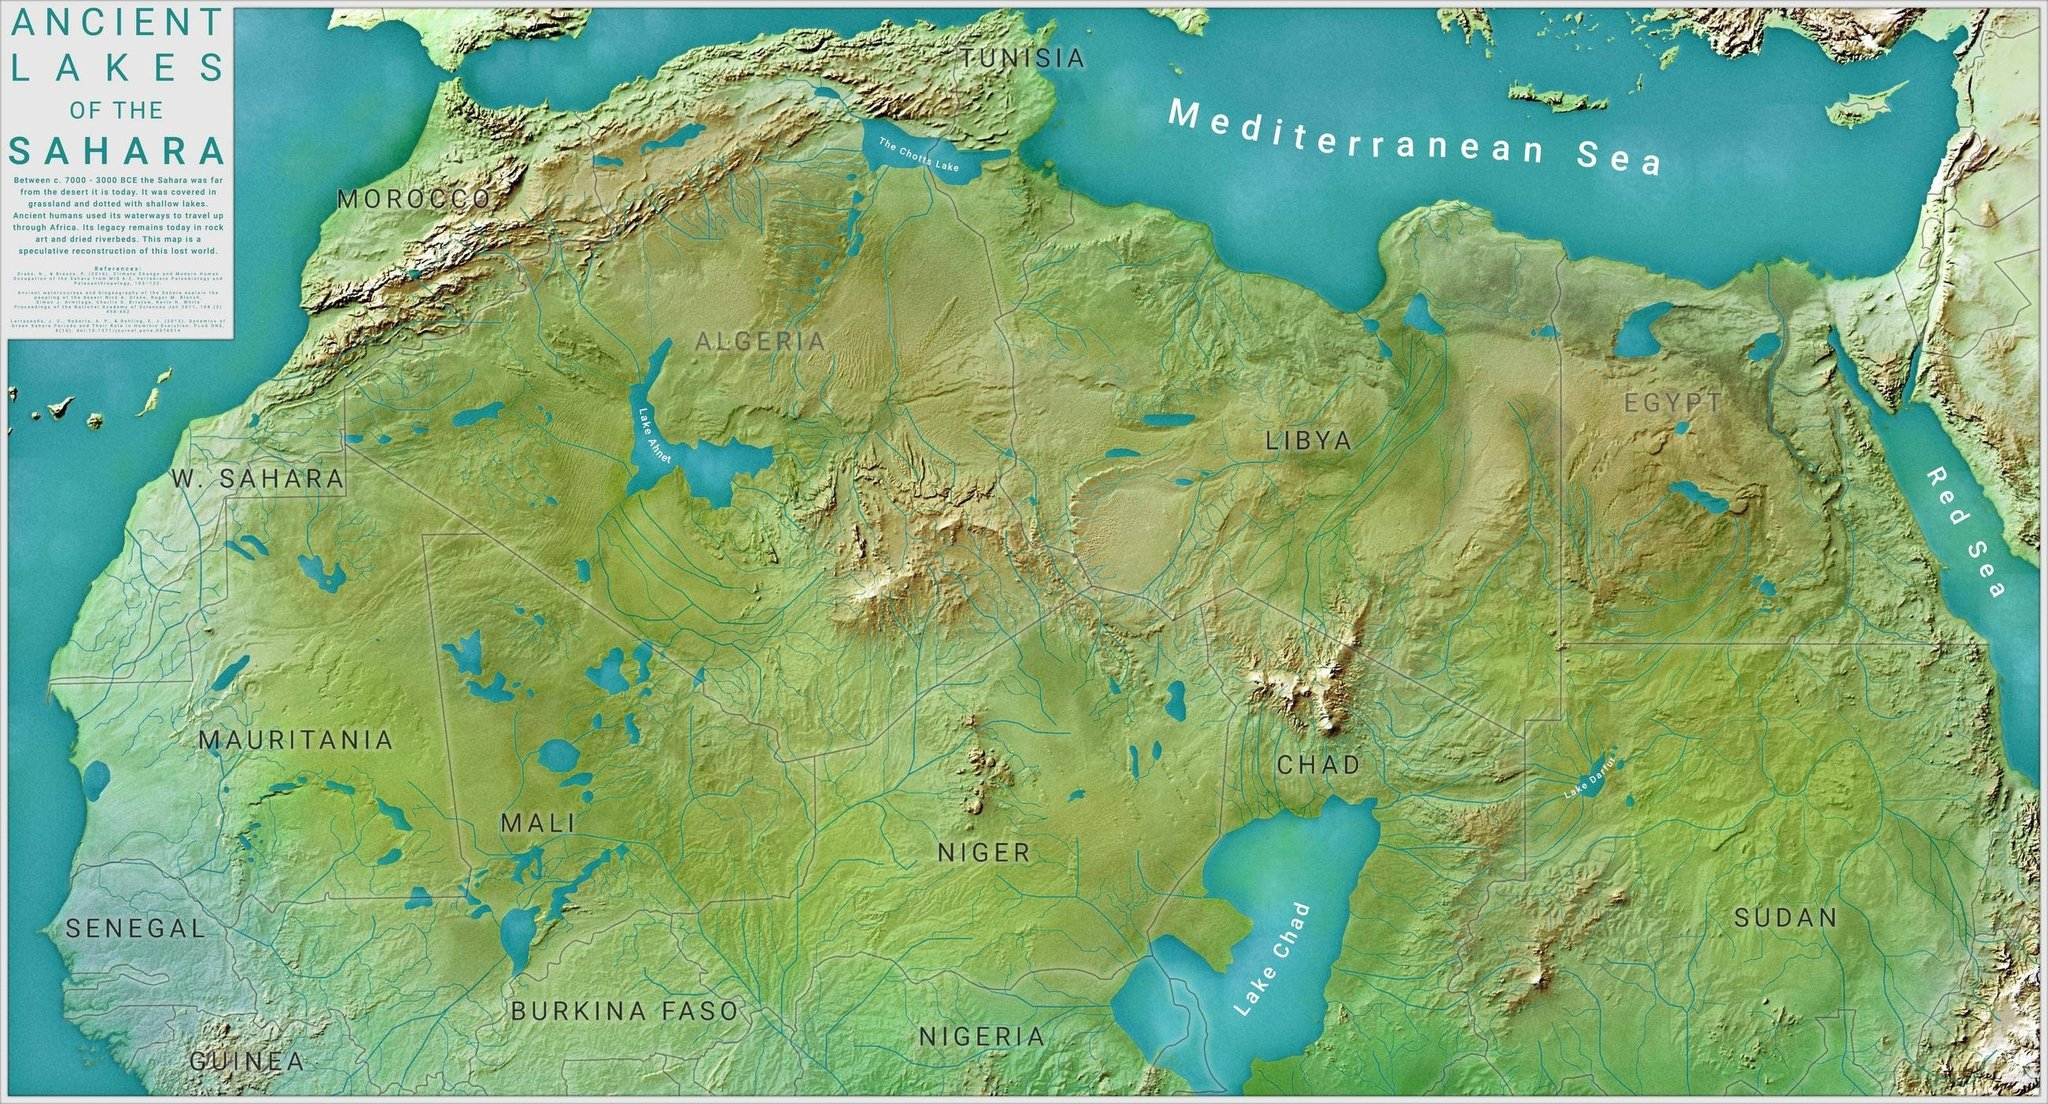 5000 years ago Sahara was a green landscape with lakes and rivers